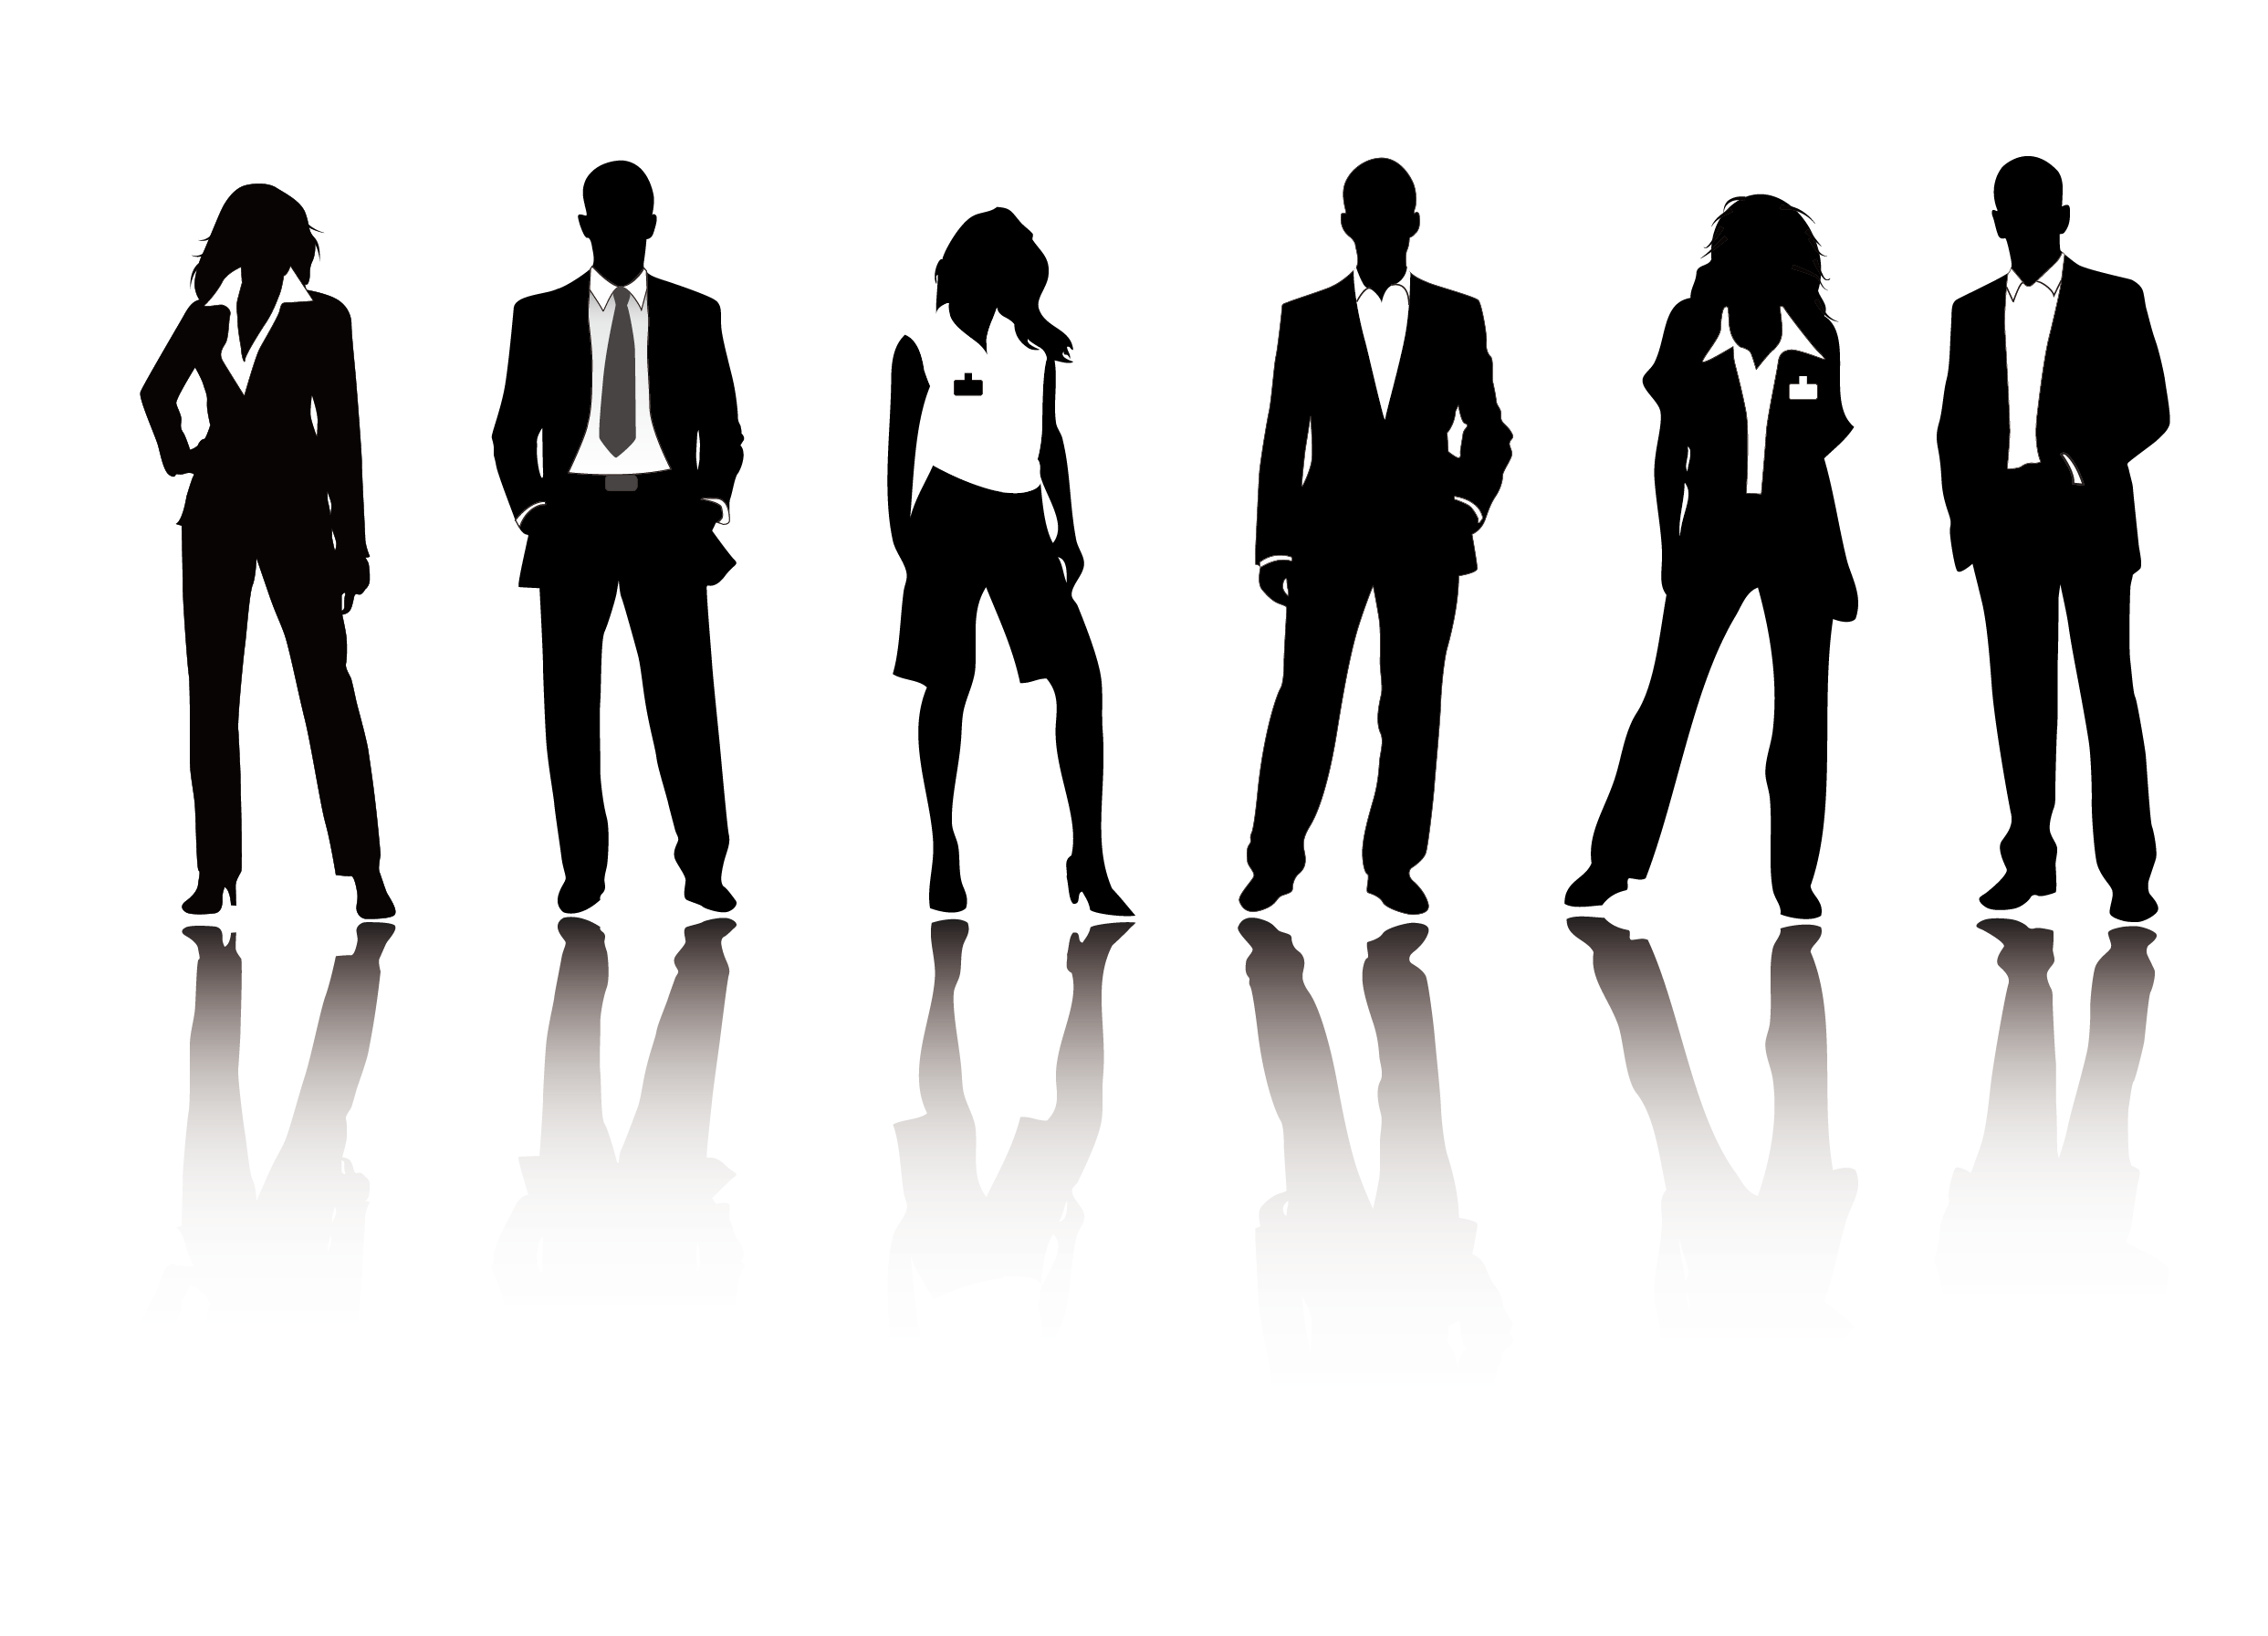 Business people silhouette png. Businessperson illustration silhouettes transprent